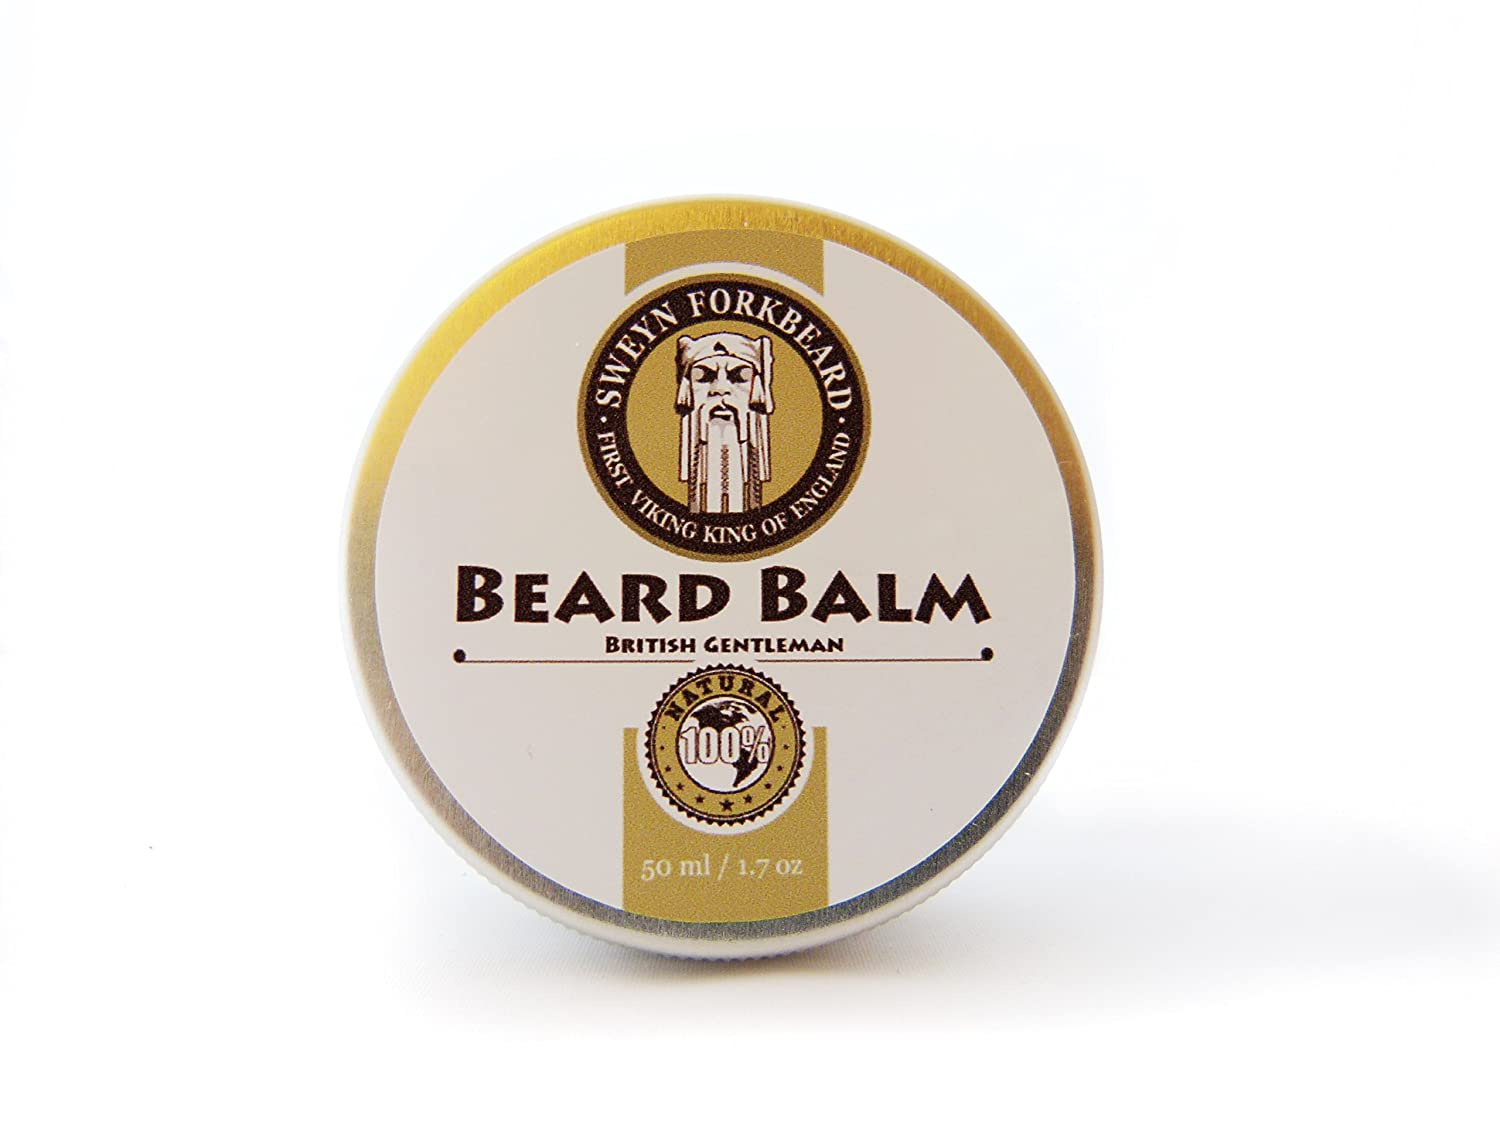 Beard Balm British Gentleman 100% Natural & Organic by Sweyn Forkbeard - A Beard Softener and Deep Conditioner For Men (30 ml/1oz Beard Balm British Gentleman)